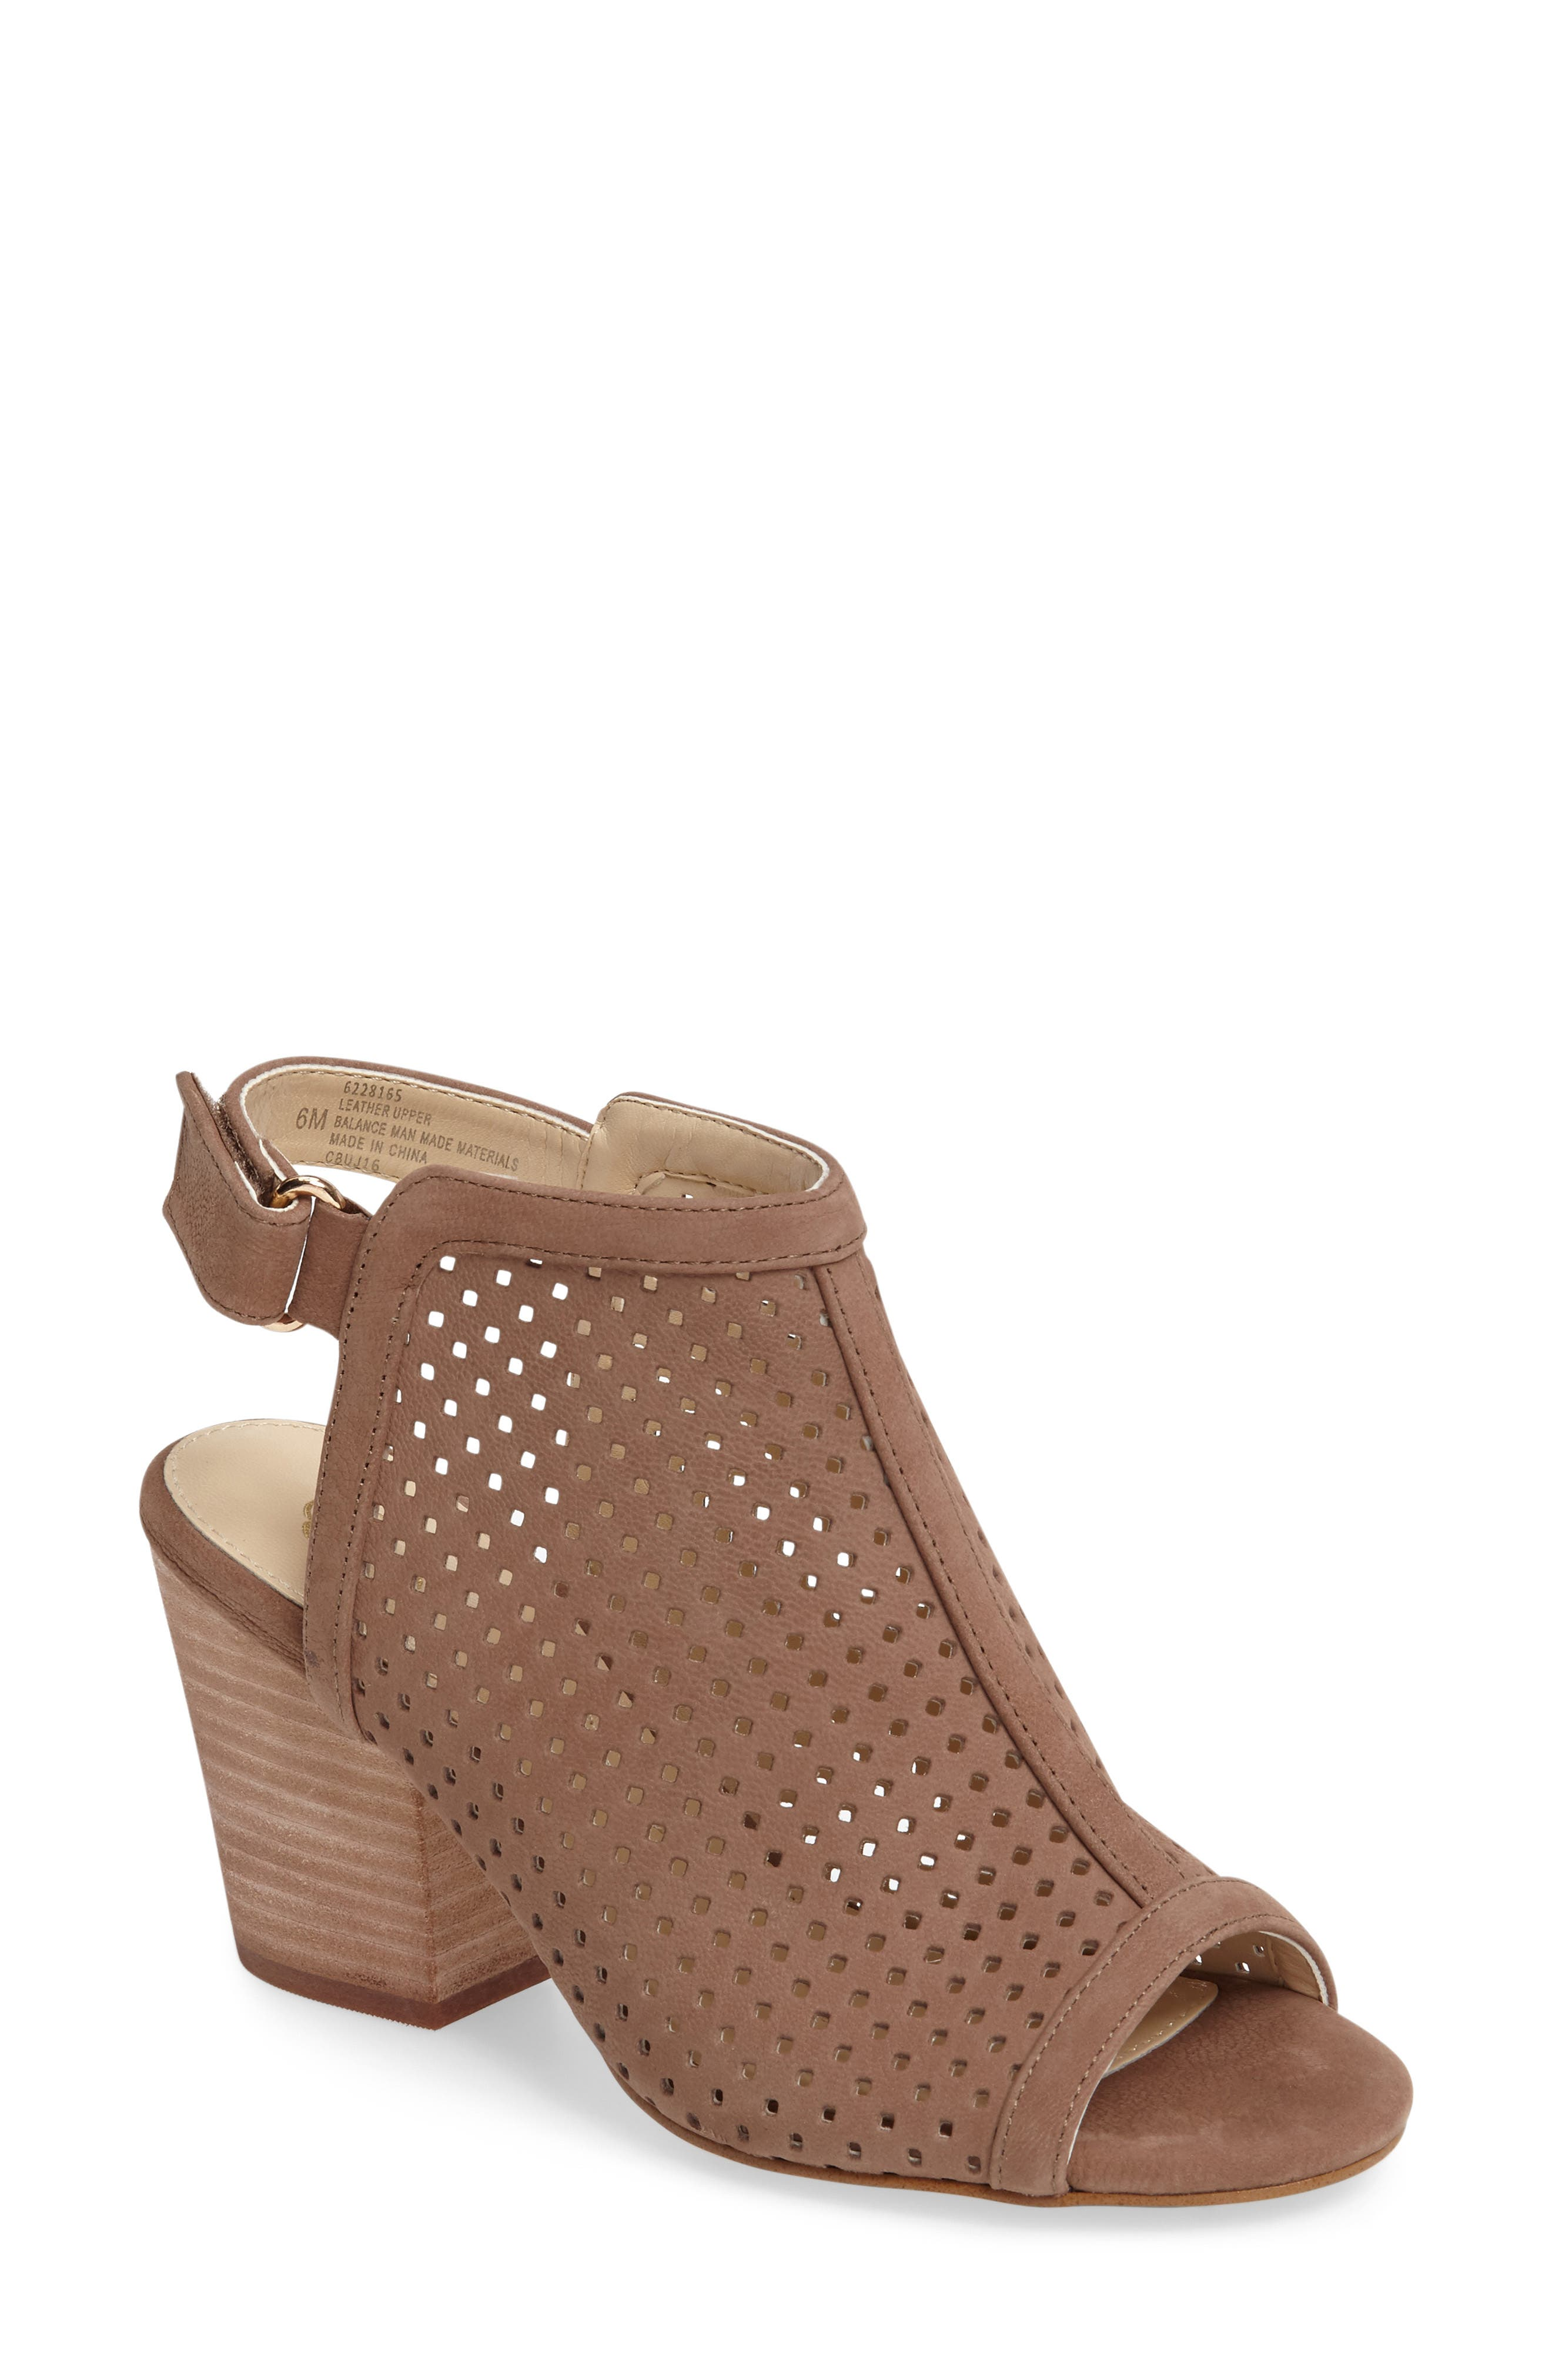 'Lora' Perforated Open-Toe Bootie Sandal,                         Main,                         color, BARLEY LEATHER